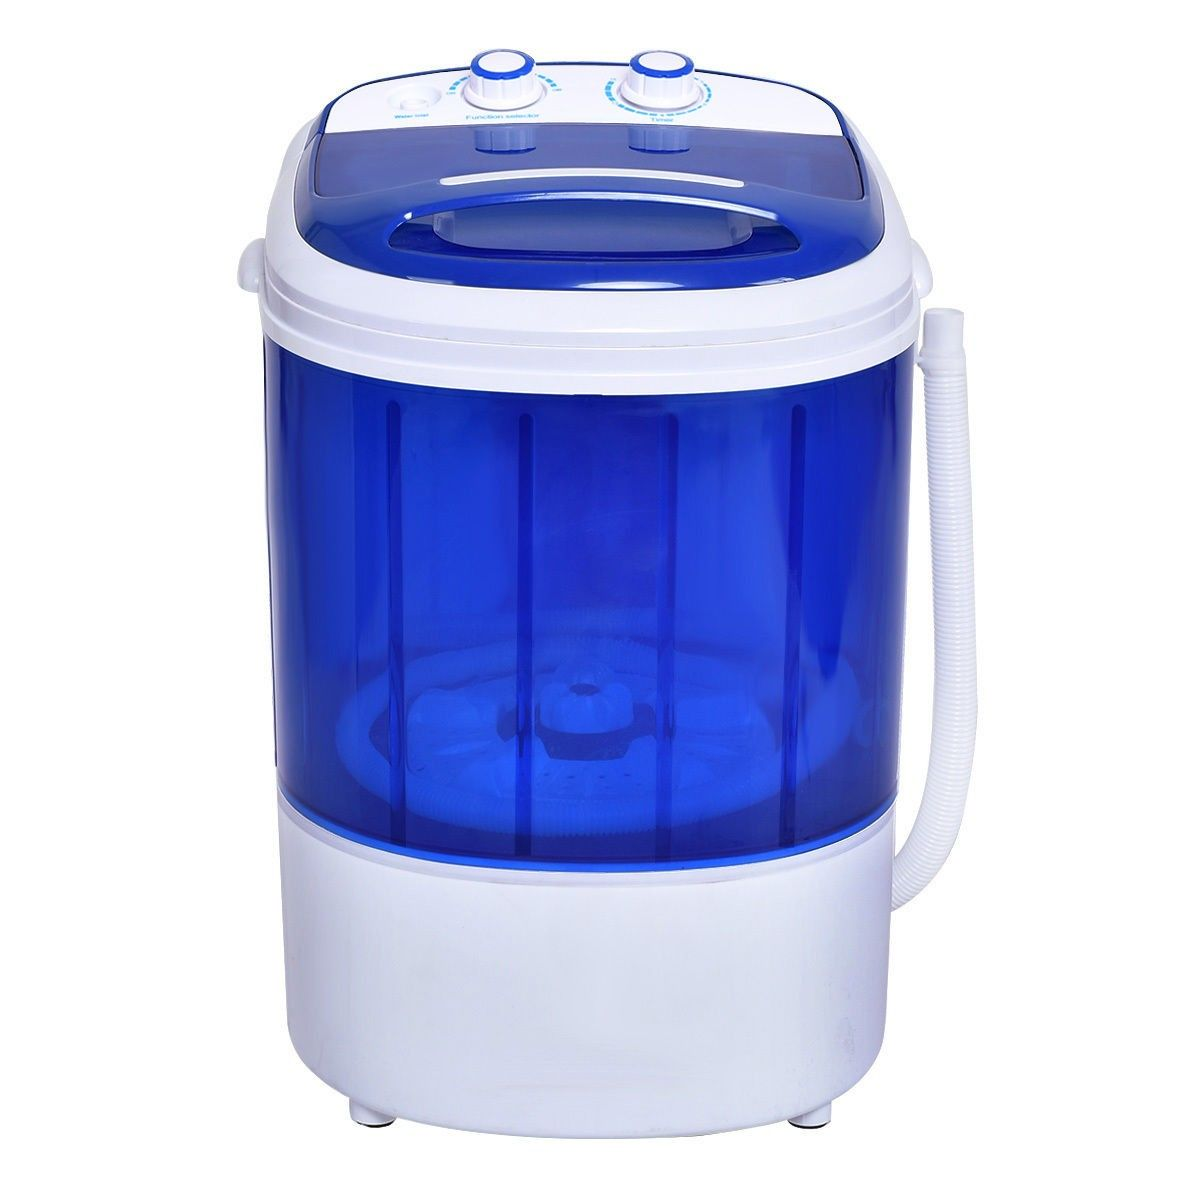 Mini Portable Washer Washing Machine Compact Size Could Be Put In A Compact Room Such As Dorms C Laundry Washing Machine Mini Washing Machine Portable Washer